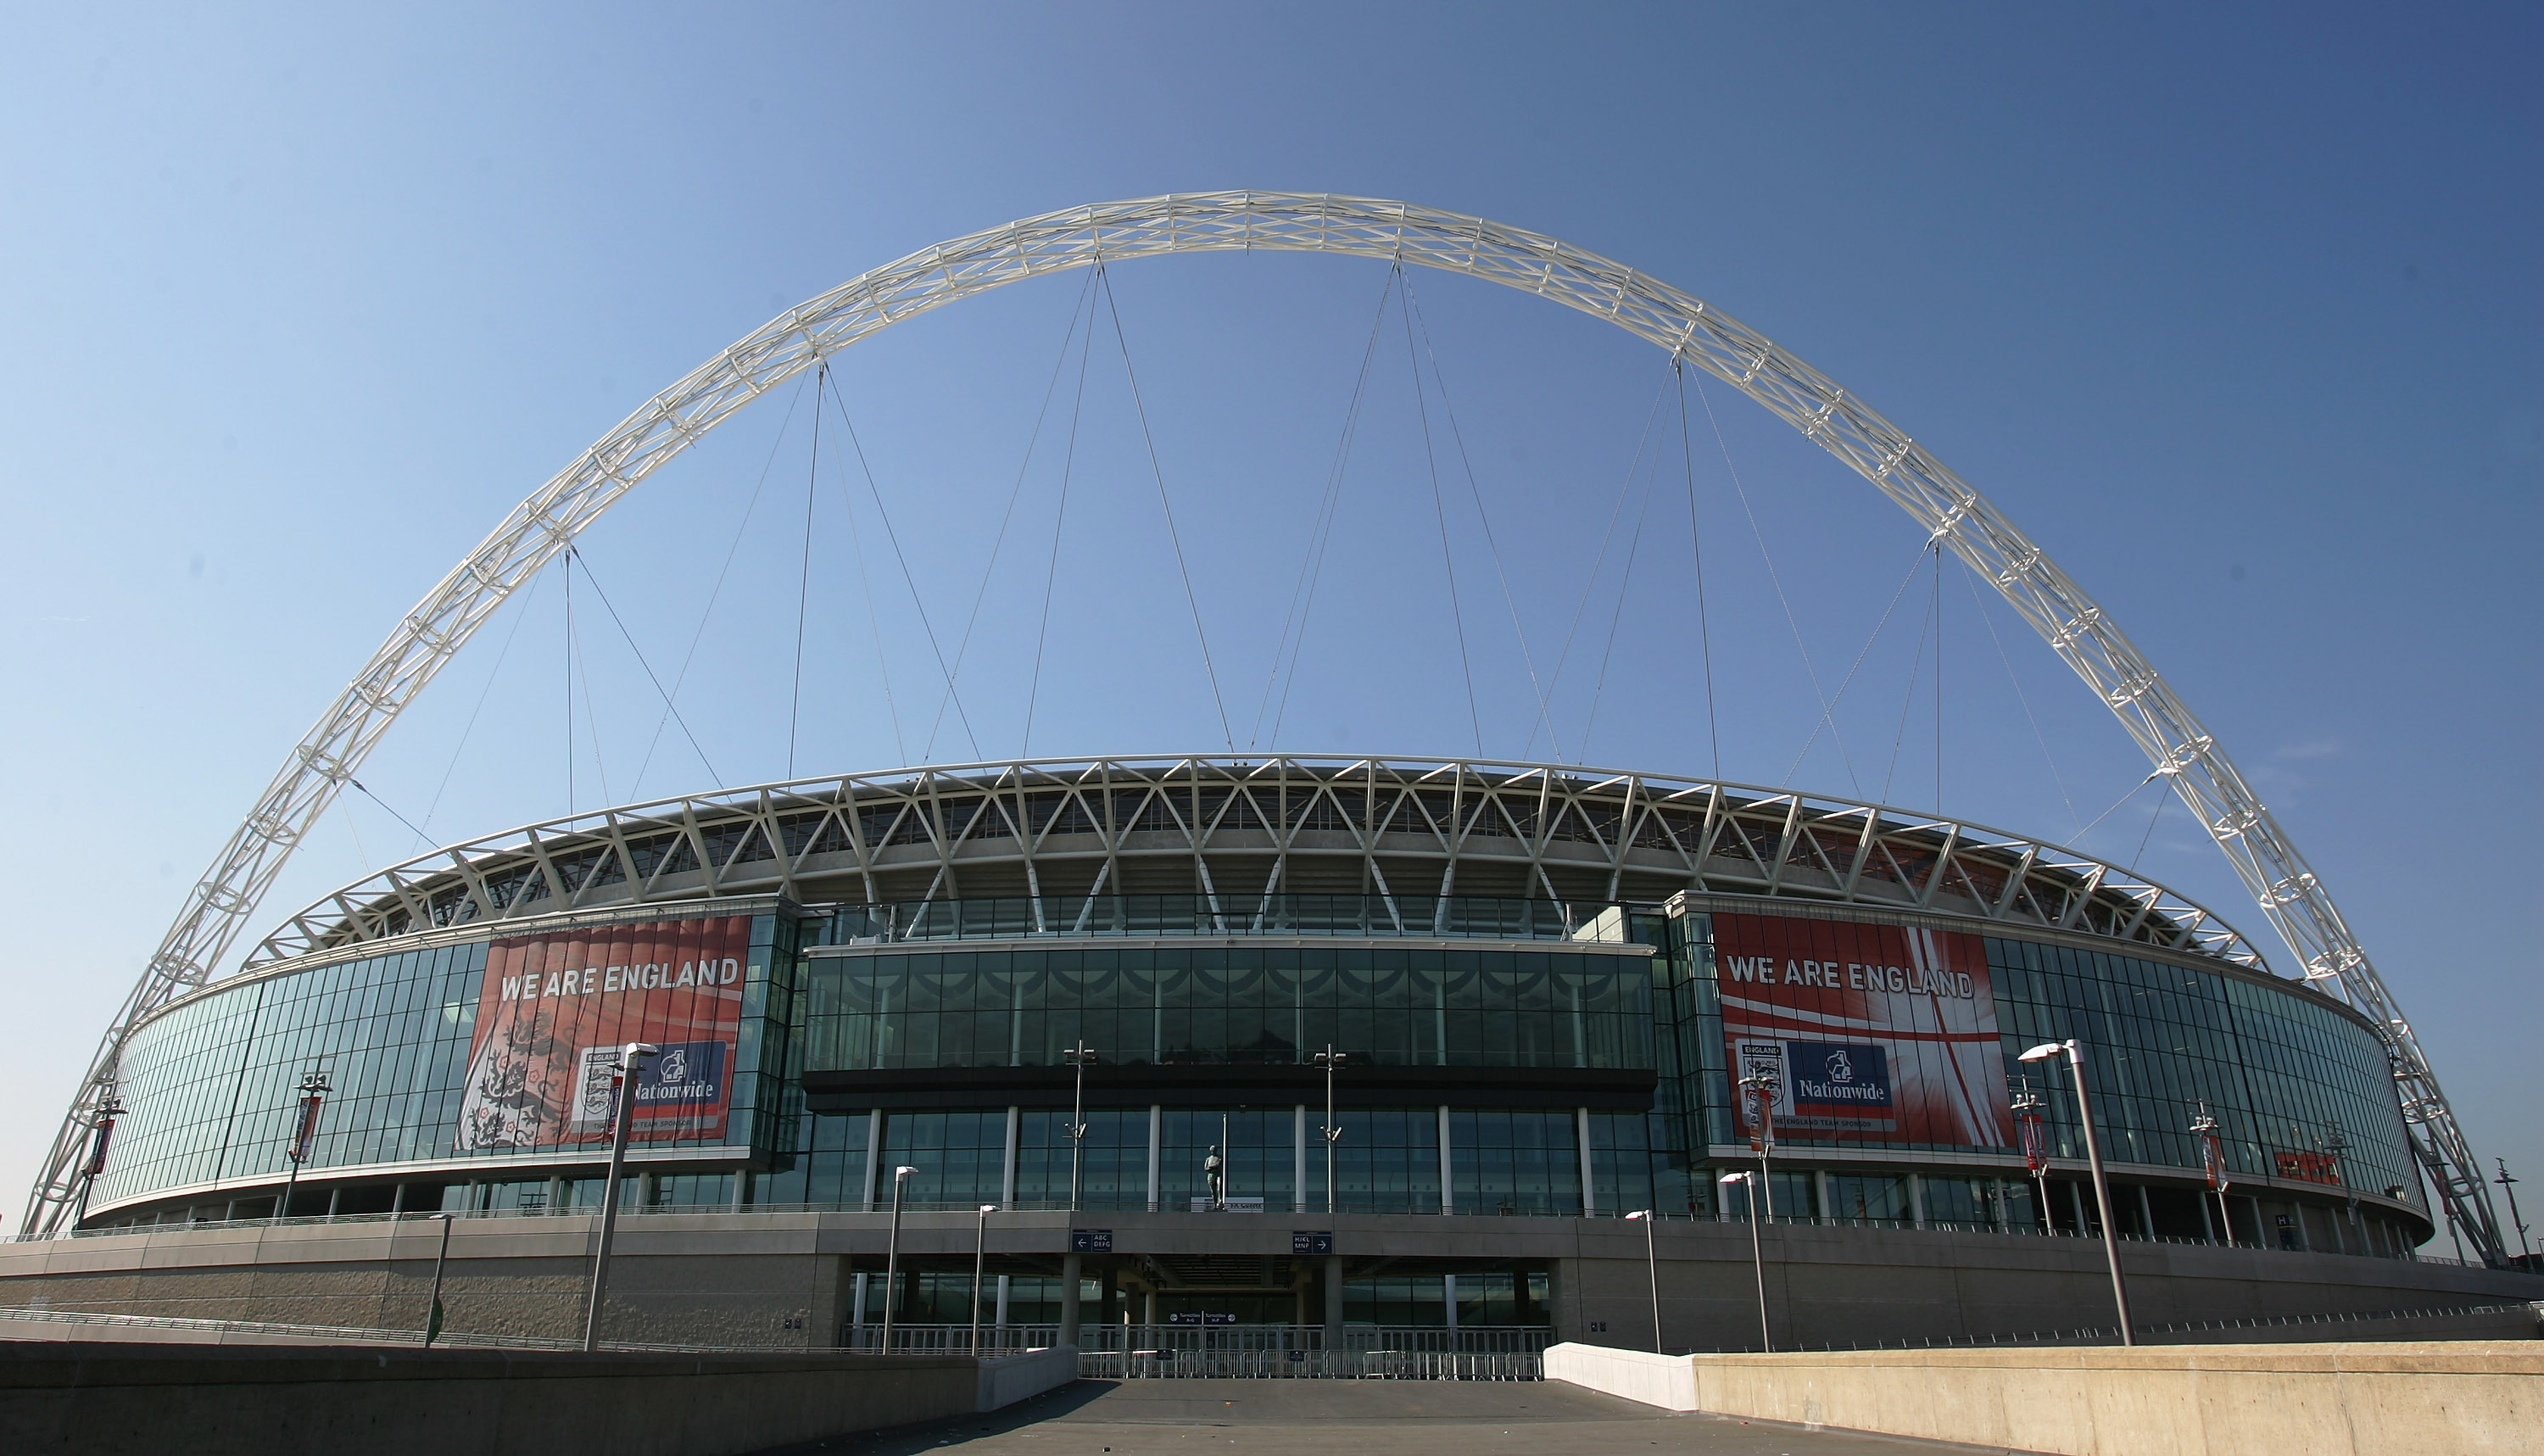 Tottenham confirm they'll play 2017/18 home games at Wembley Stadium